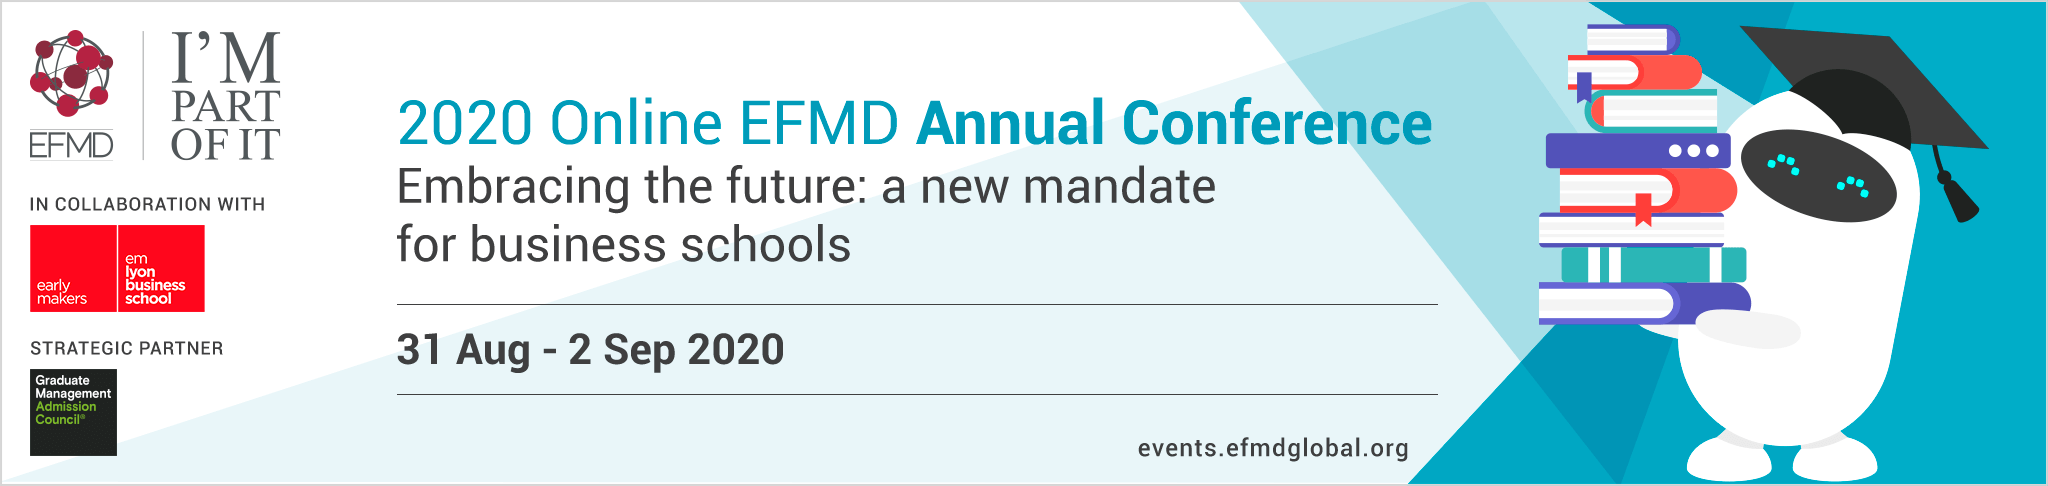 2020 Online EFMD Annual Conference -  - Online -  - Monday 31 August › Wednesday 2 September 2020